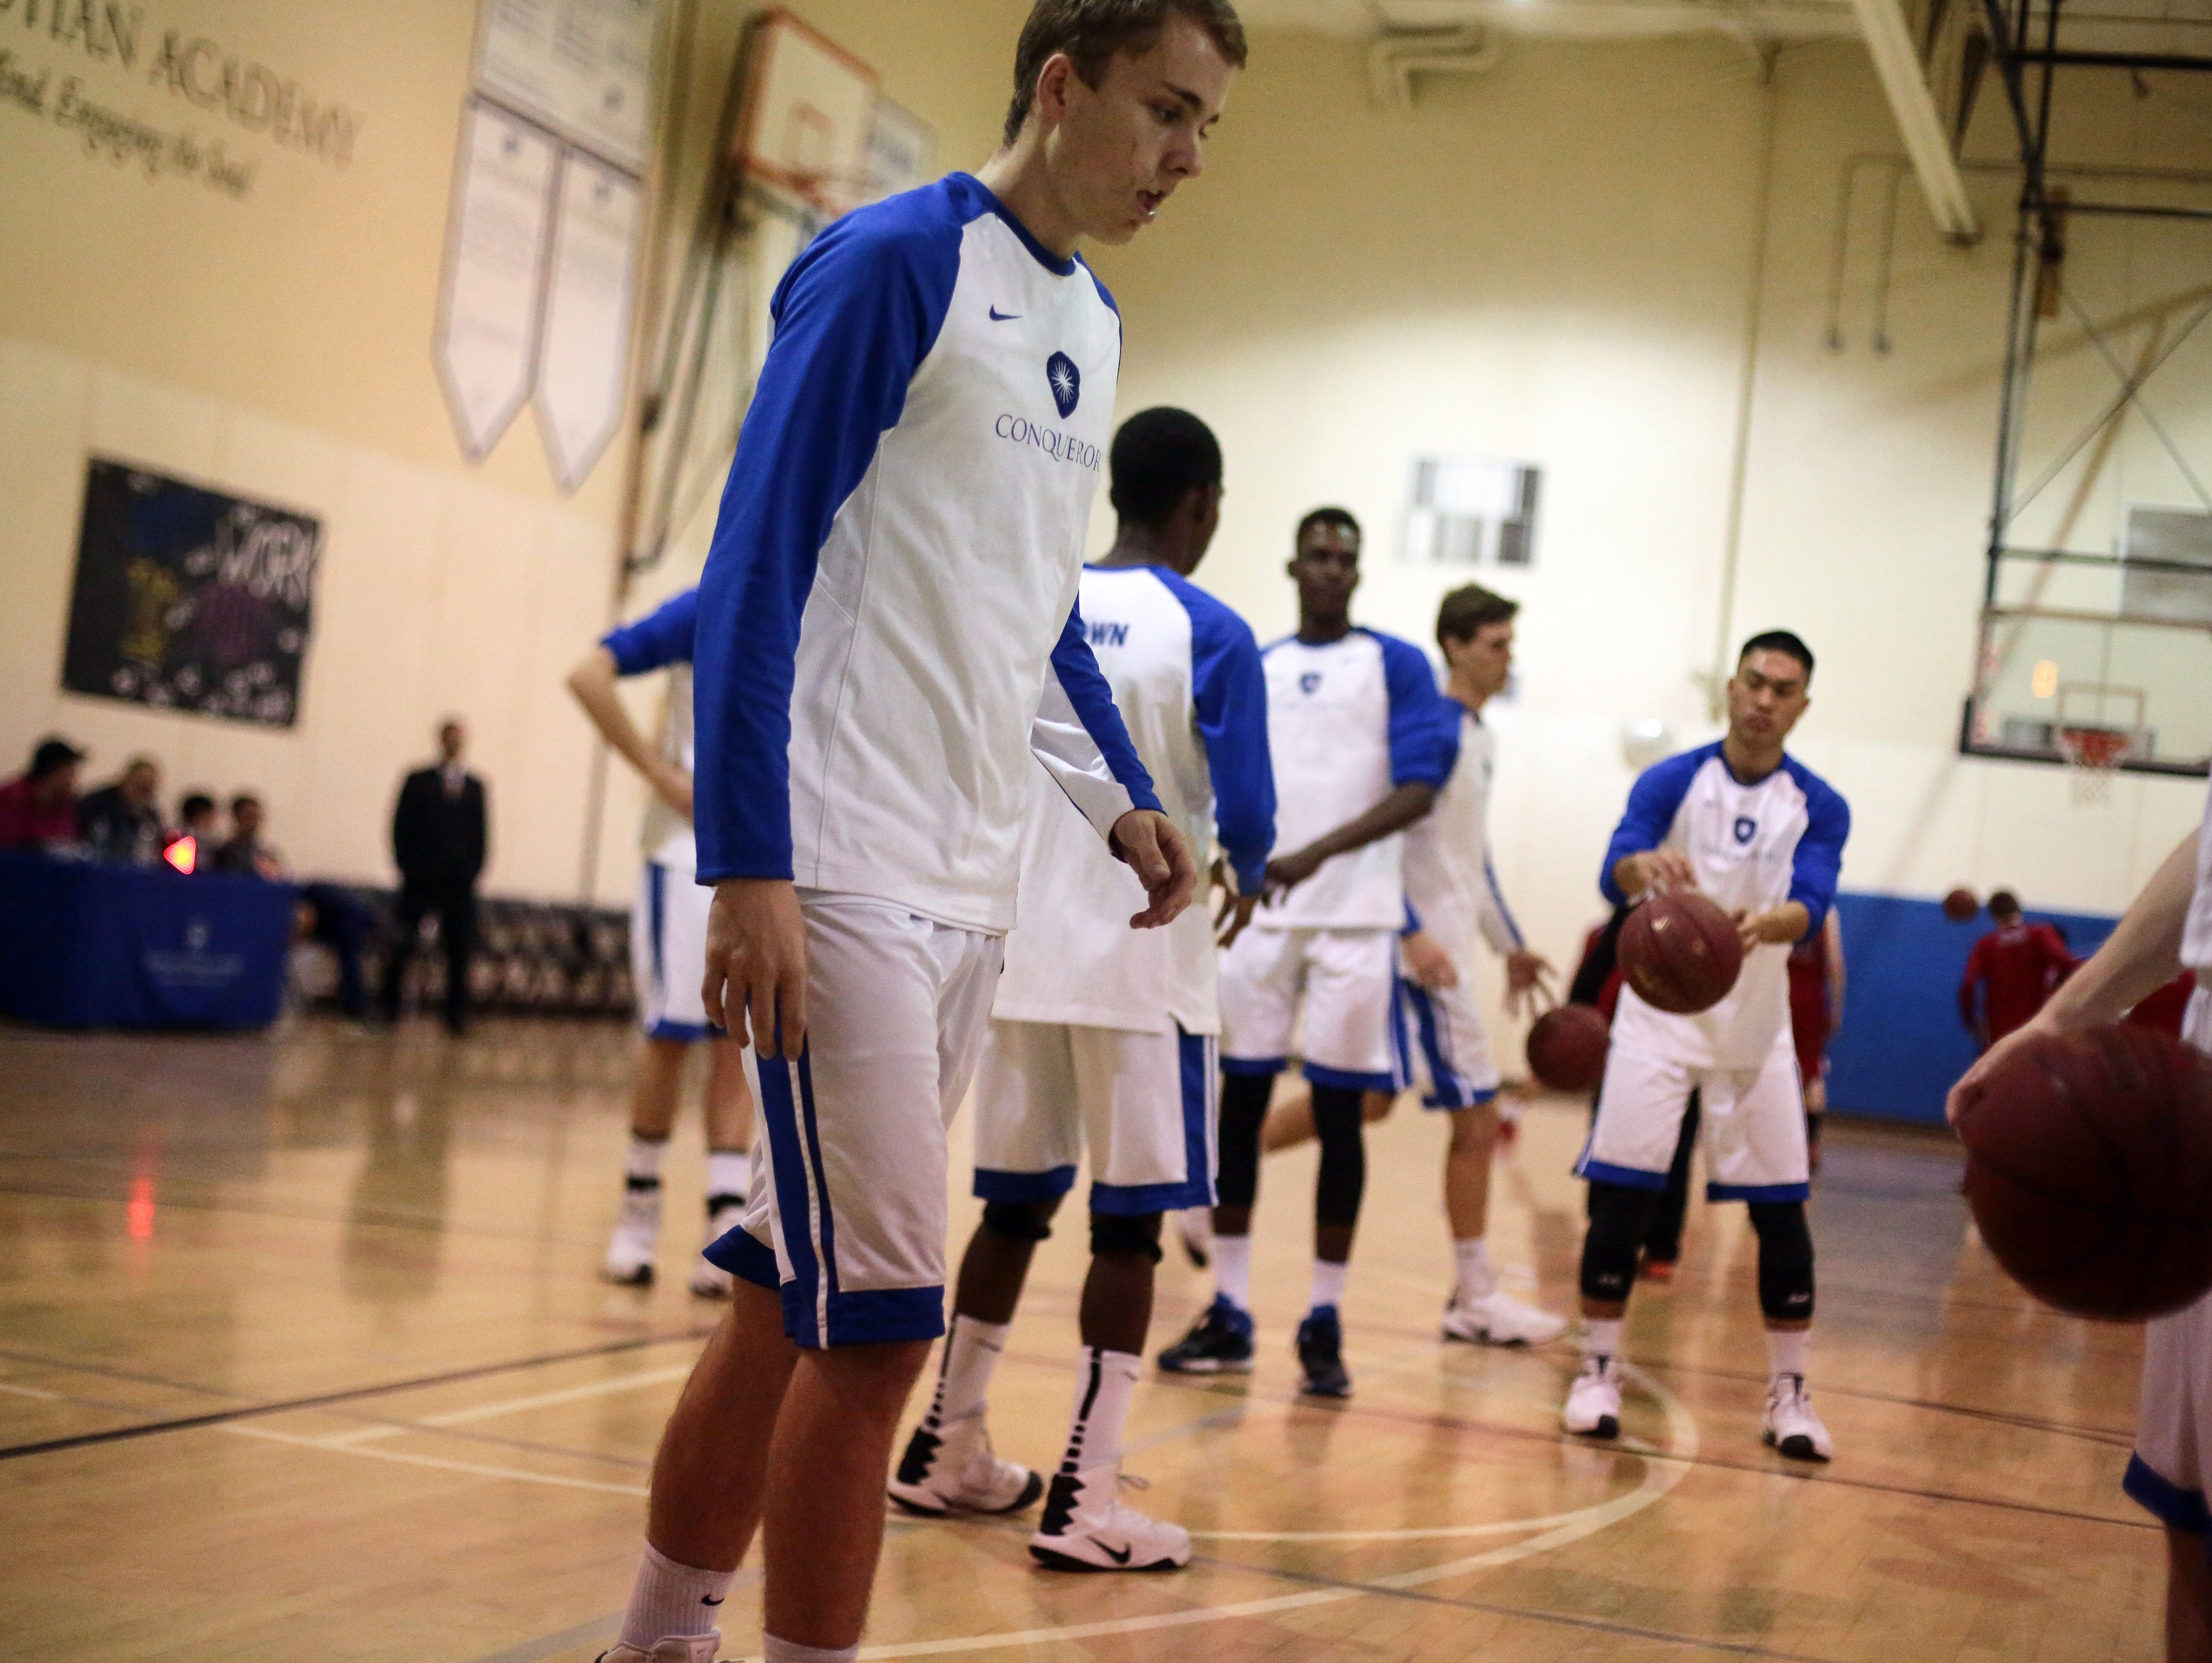 Desert Christian forward Will Whitaker warms up with his team on Wednesday, February 7, 2017 before their game with Palm Valley.